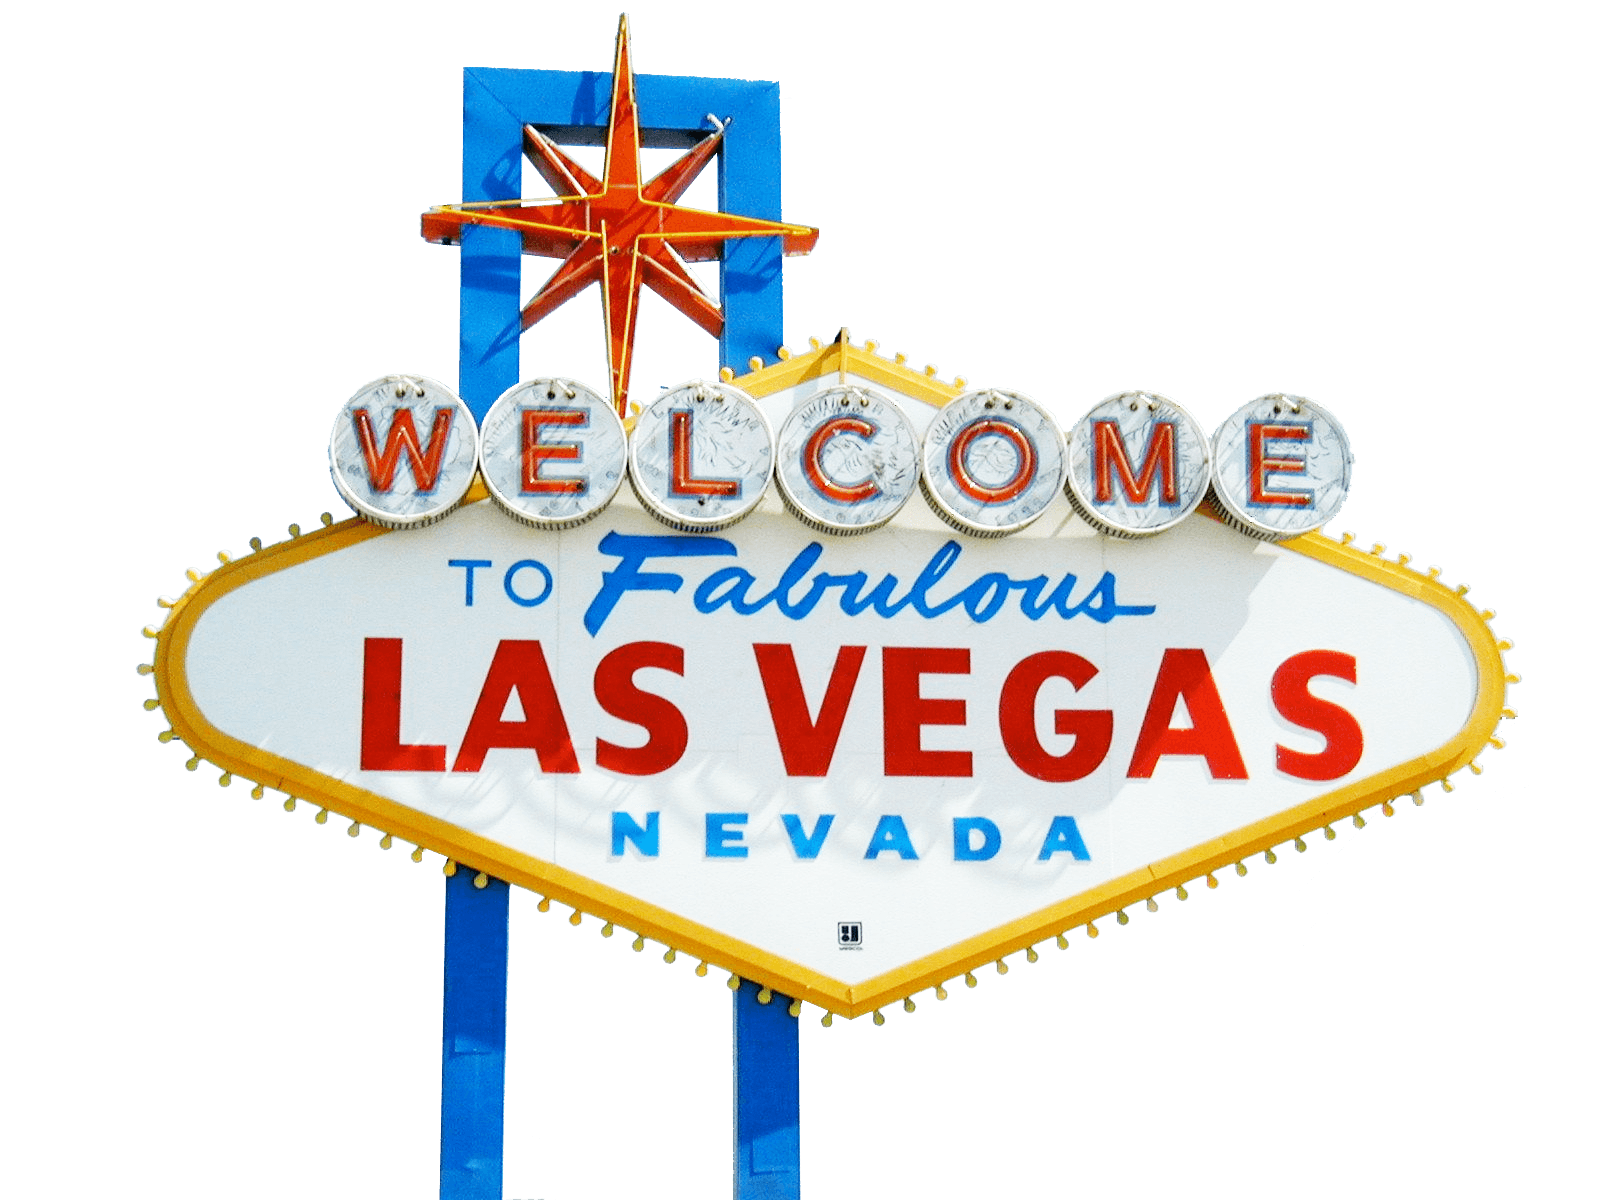 Did you know 5 facts about las vegas 5 facts about las vegas pronofoot35fo Choice Image